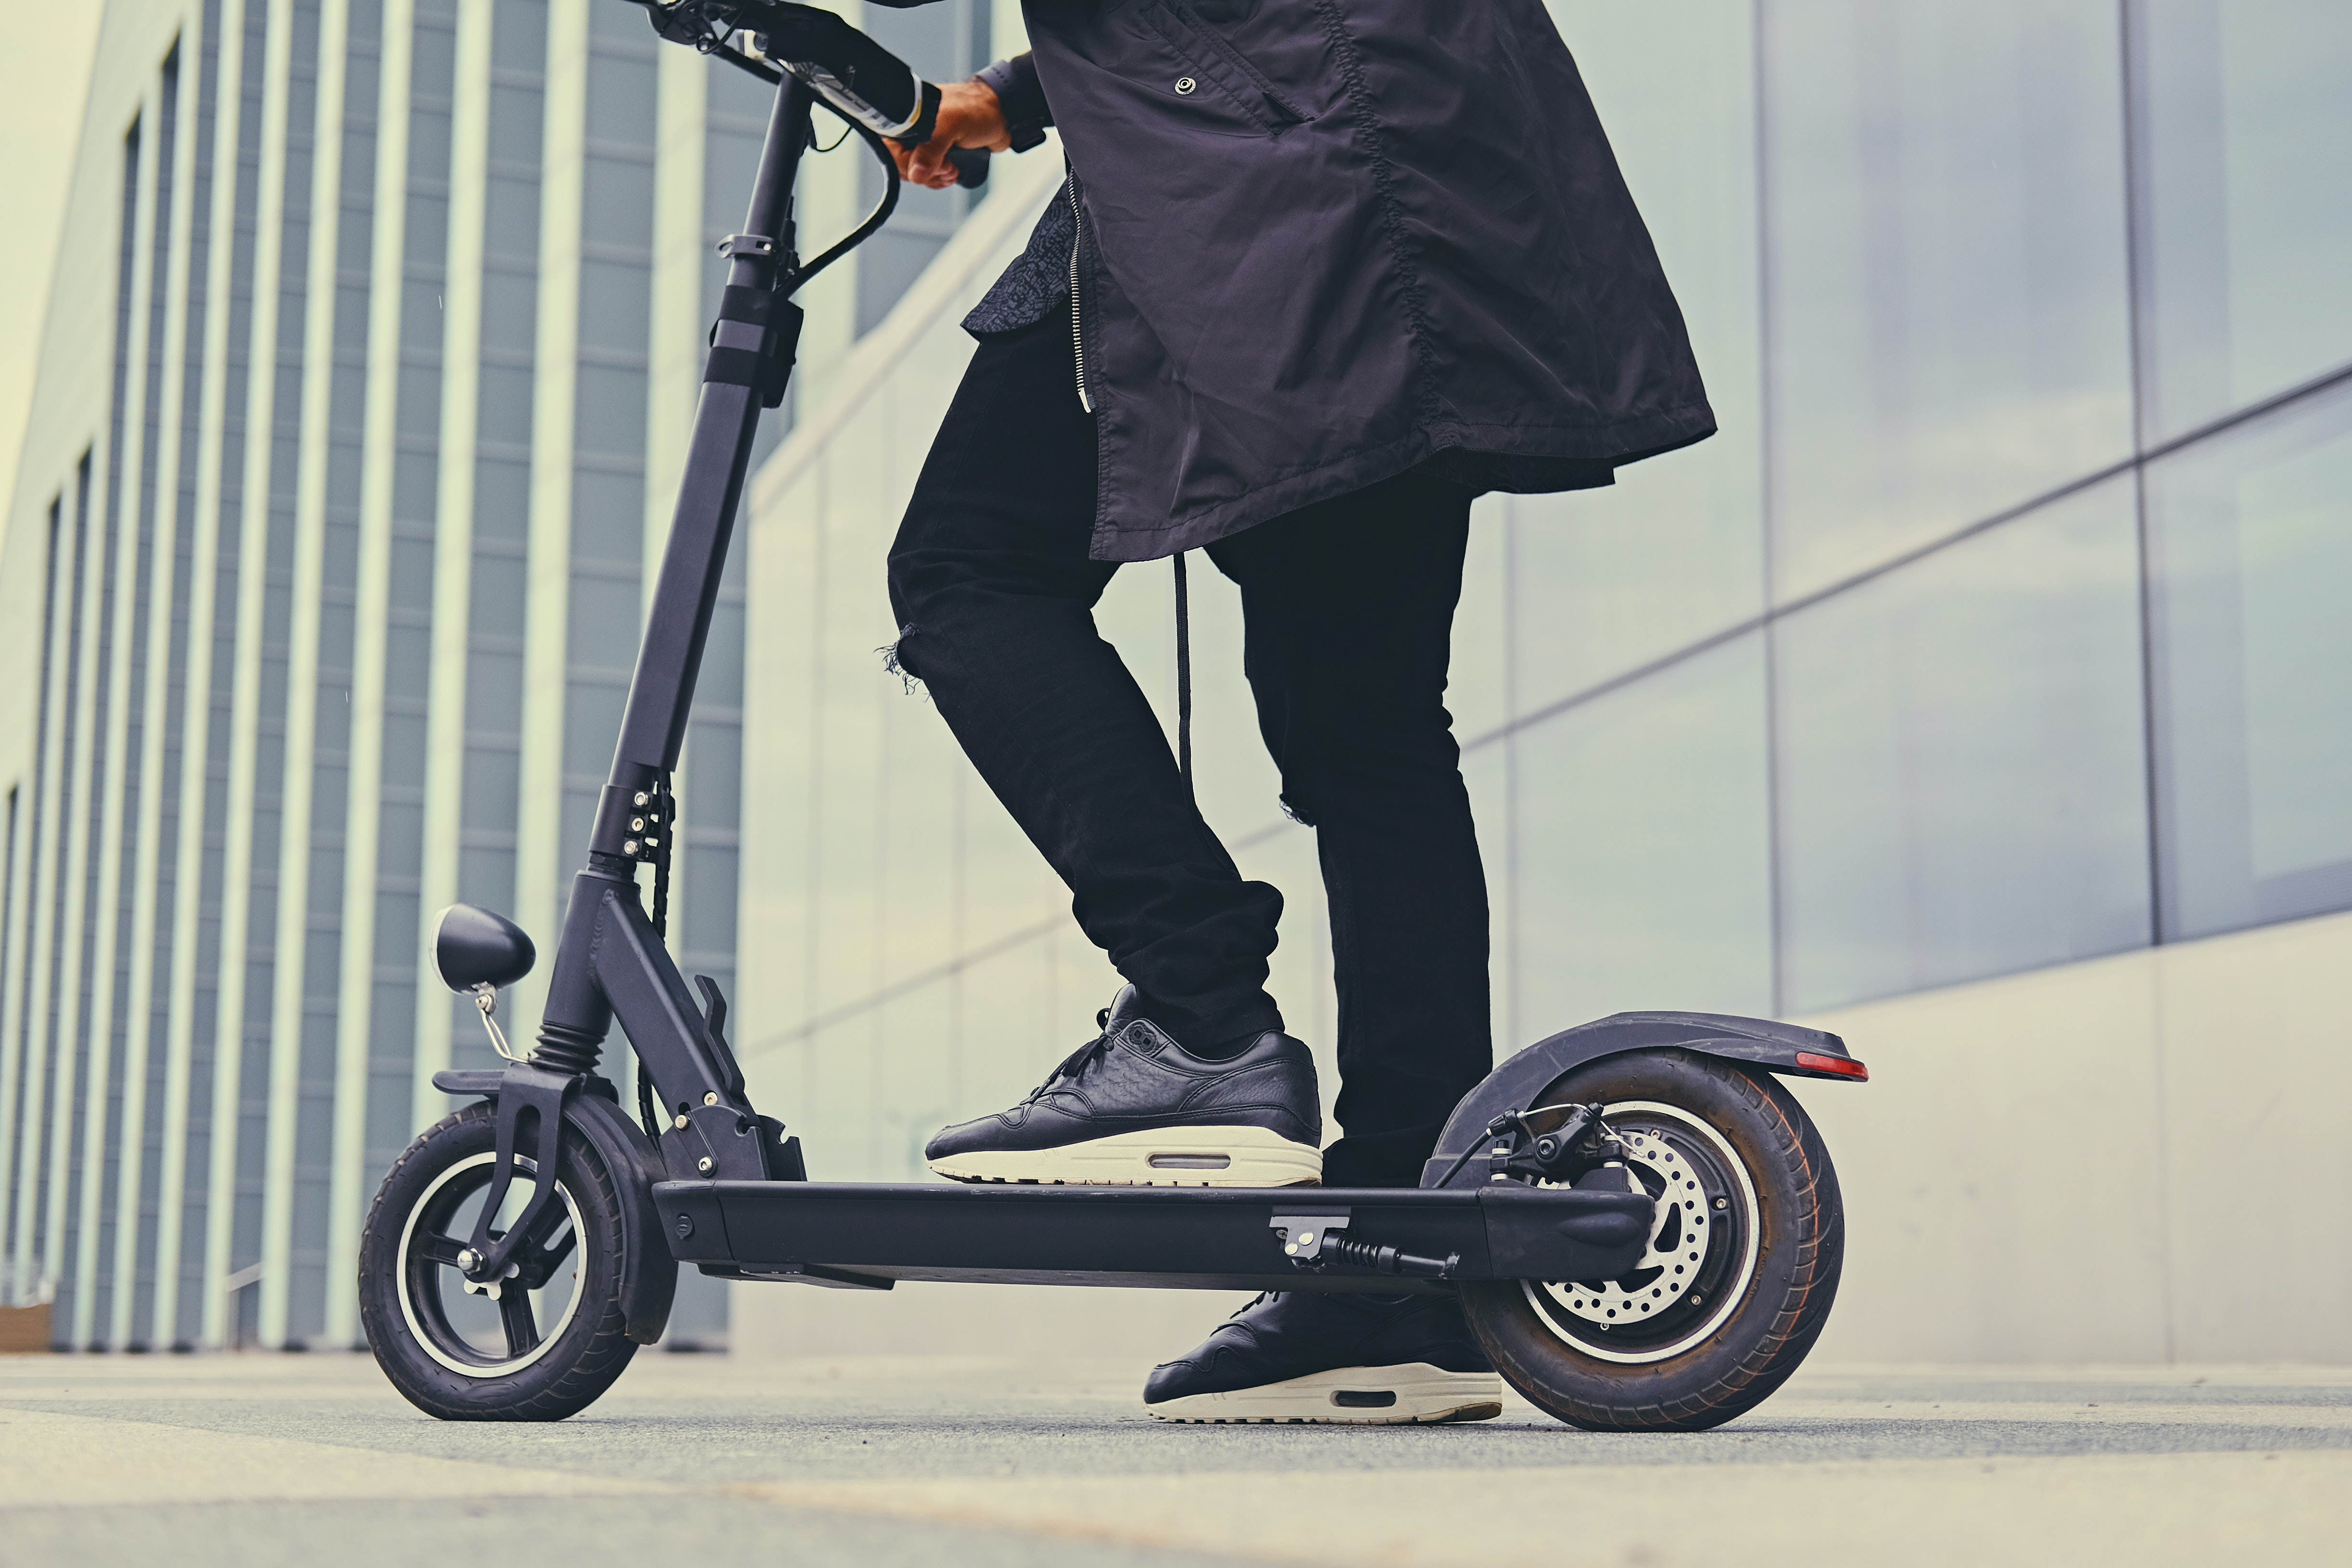 Are e-scooters safe? Not really, but these cities are trying